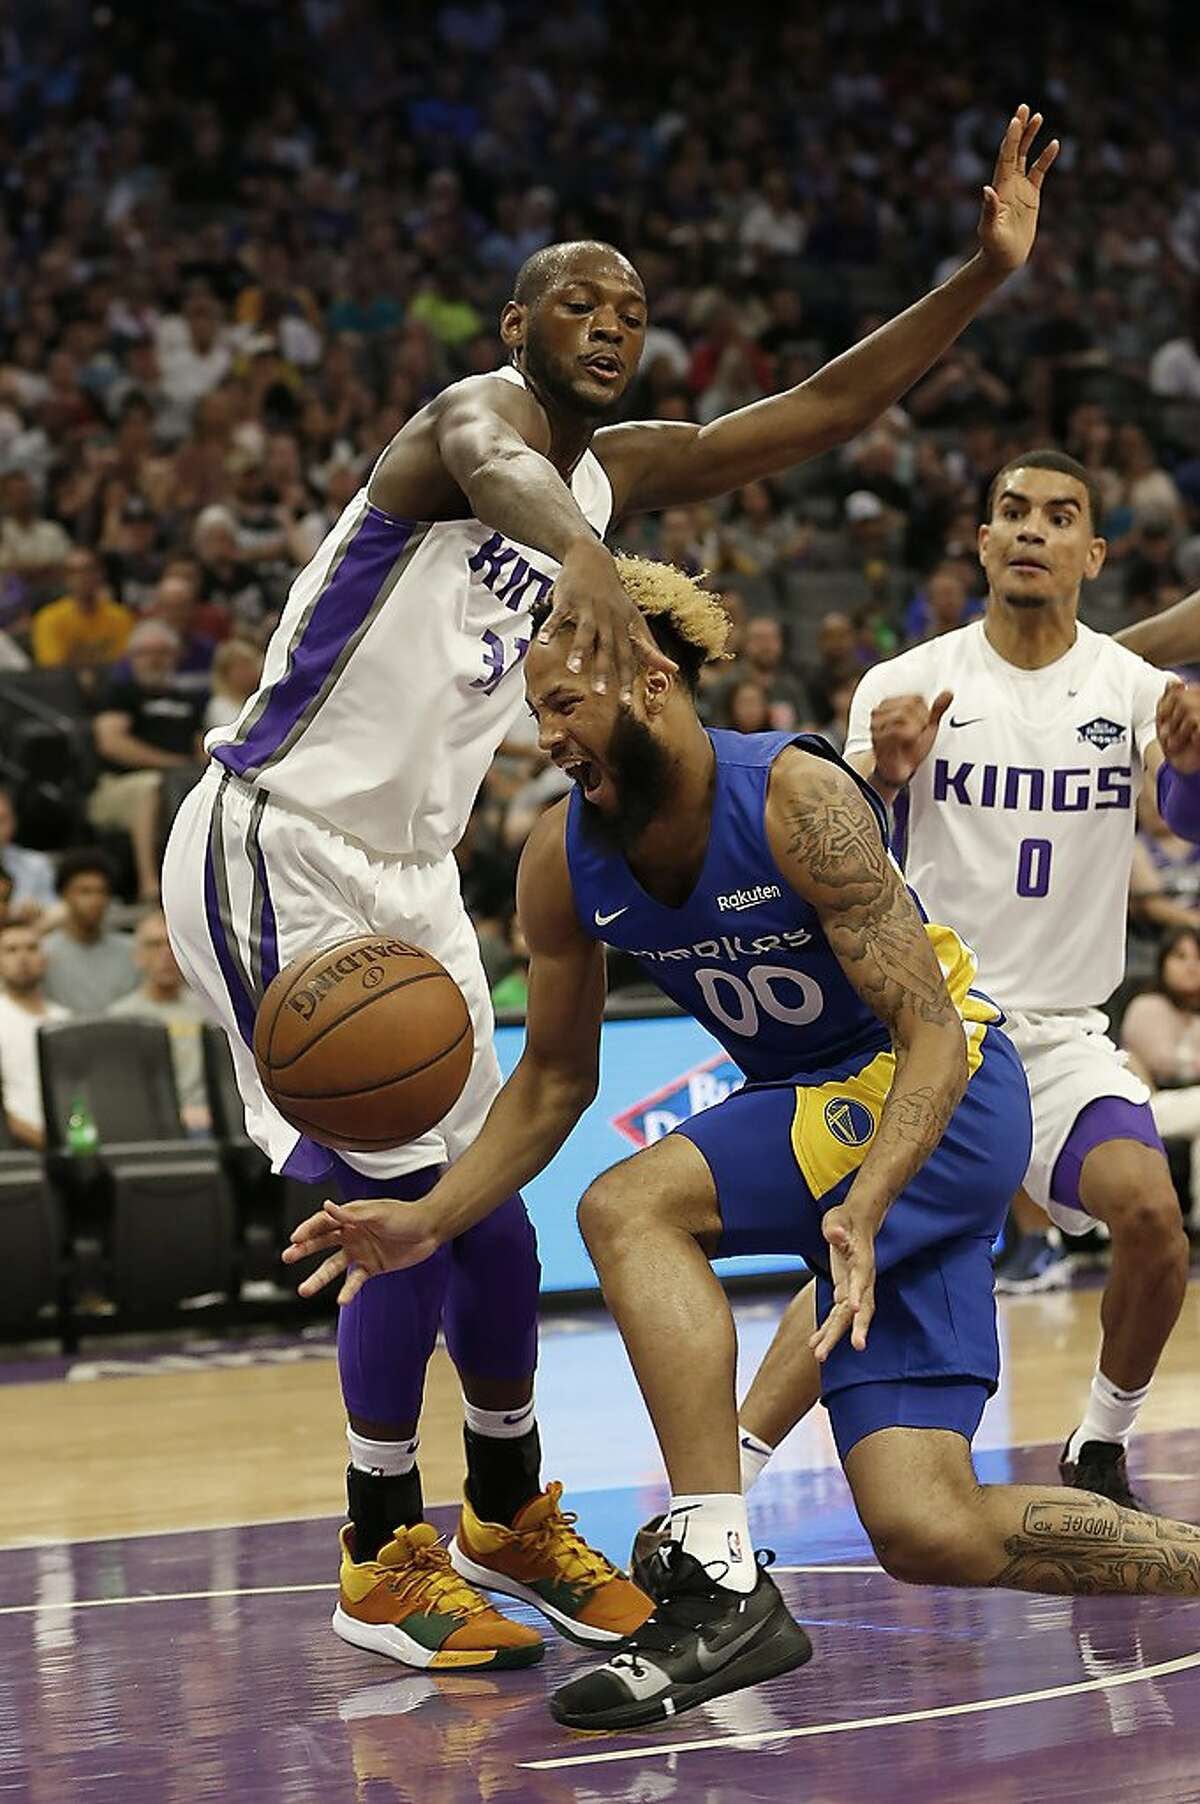 Golden State Warriors guard Ky Bowman, right, loses the ball as he goes to the basket against Sacramento Kings guard Milton Doyle, left, during the first half of a NBA basketball summer league game in Sacramento, Calif., Monday, July 1, 2019. The Kings won 81-77. (AP Photo/Rich Pedroncelli)